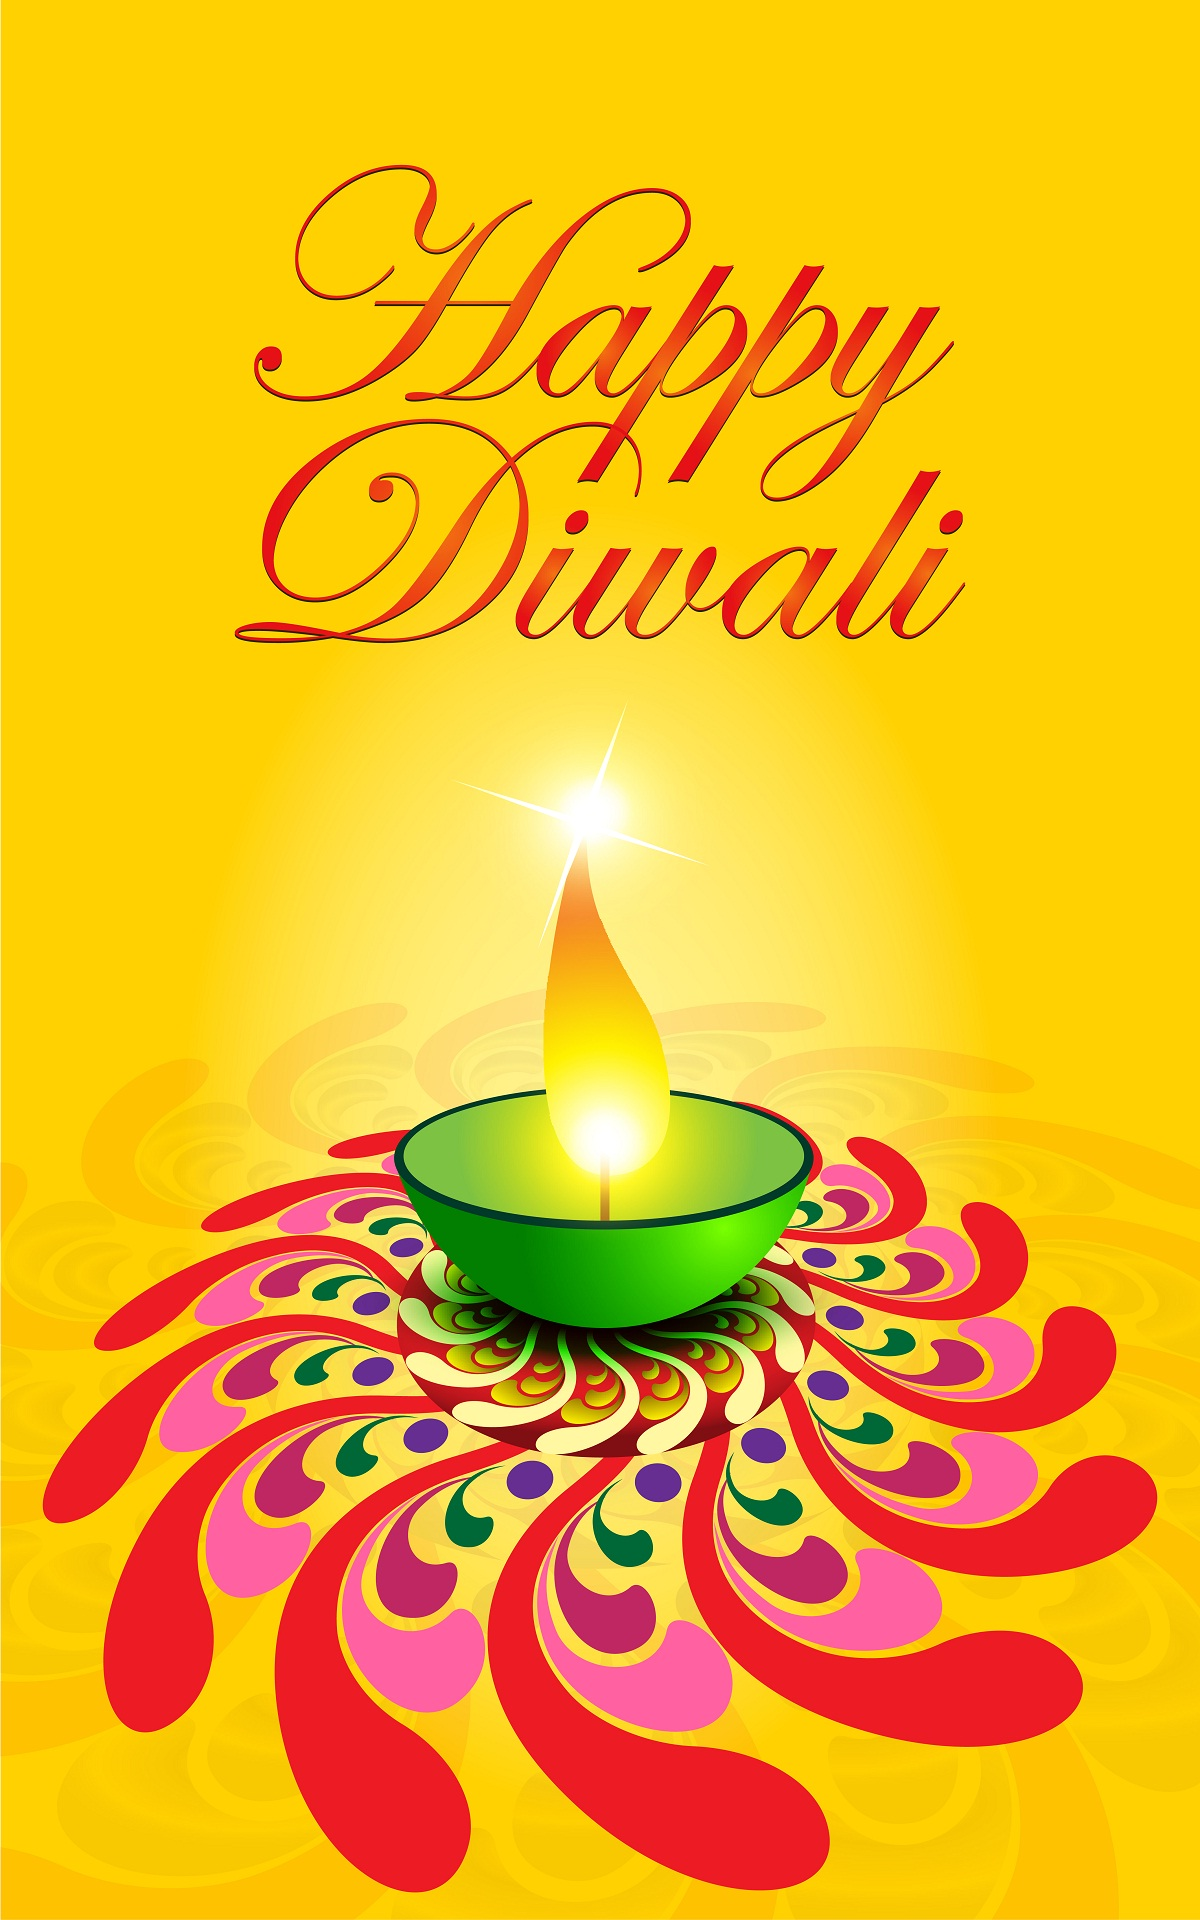 Happy Diwali Wallpaper For Mobile